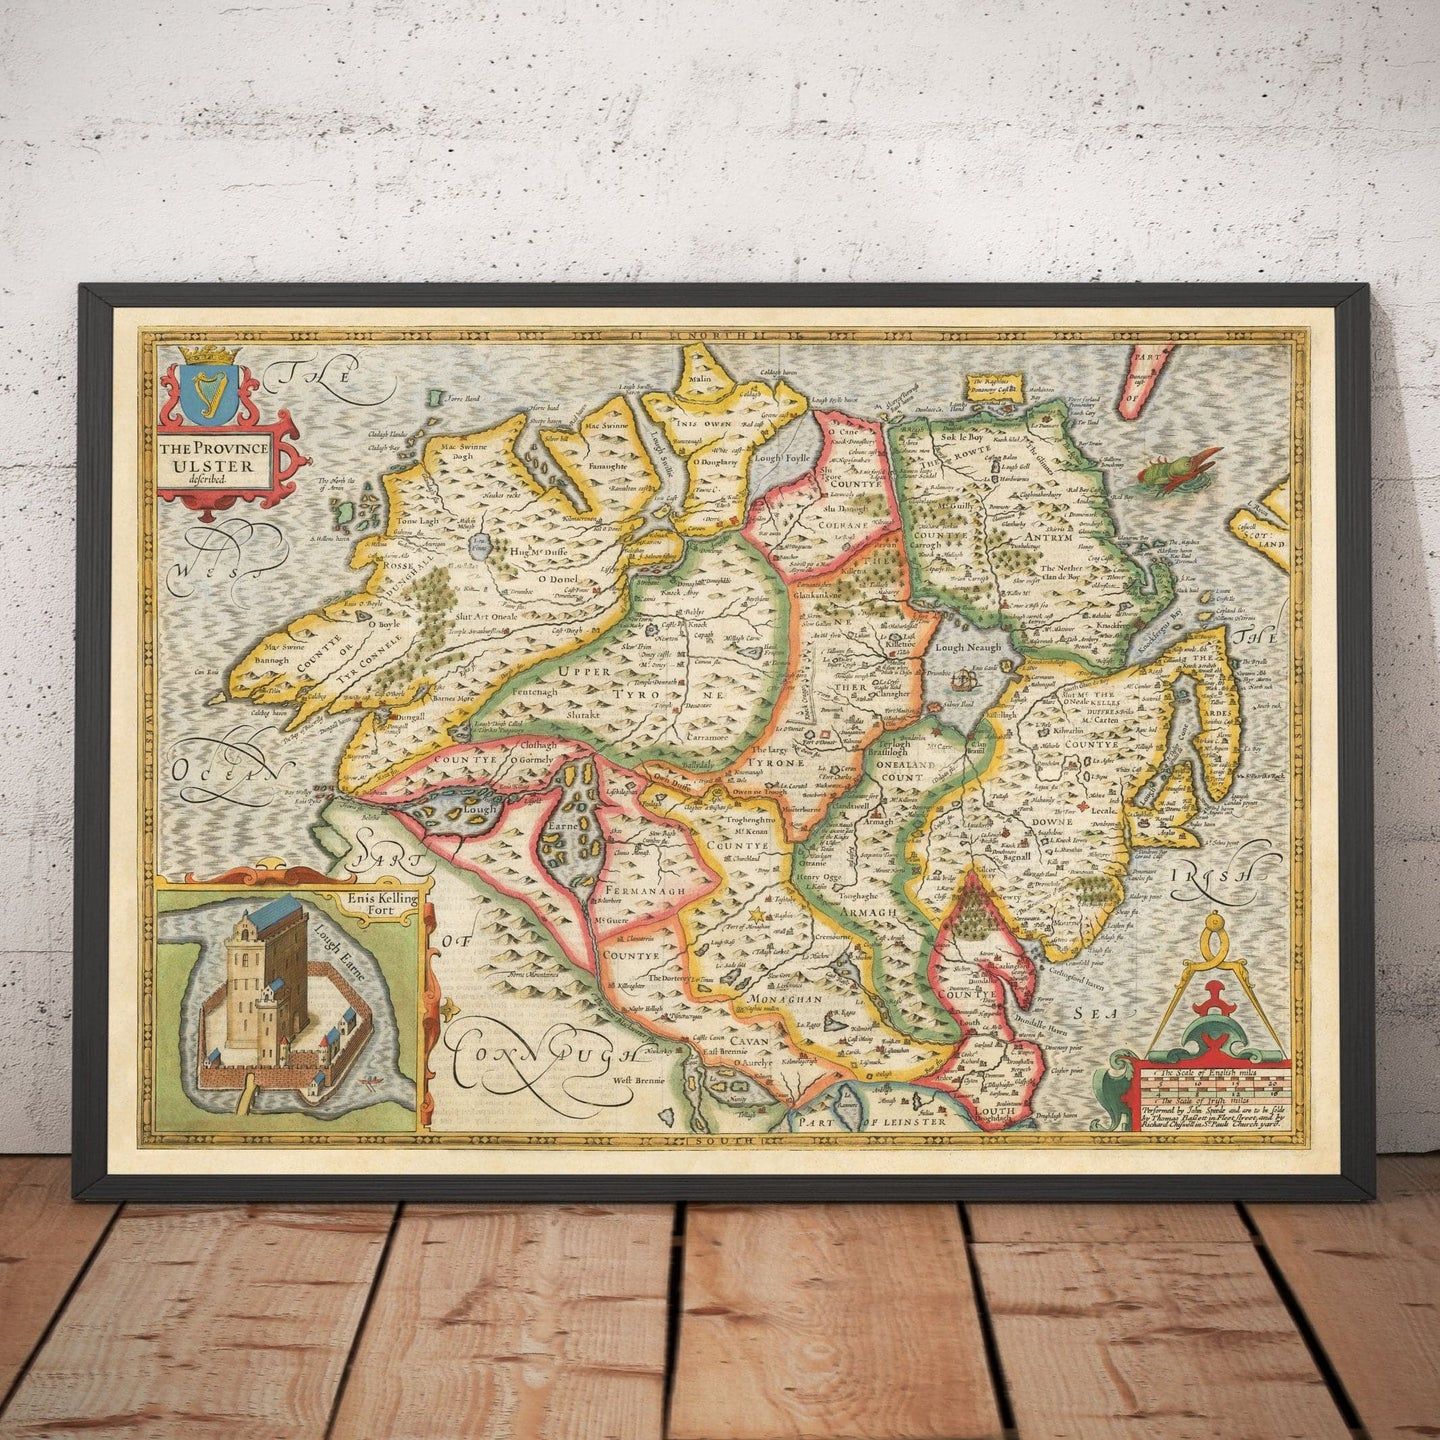 Old Map of Ulster, Northern Ireland in 1611 by John Speed - Belfast, Derry, County Antrim & Down - Christmas Gift - Vintage Map - Framed Unframed